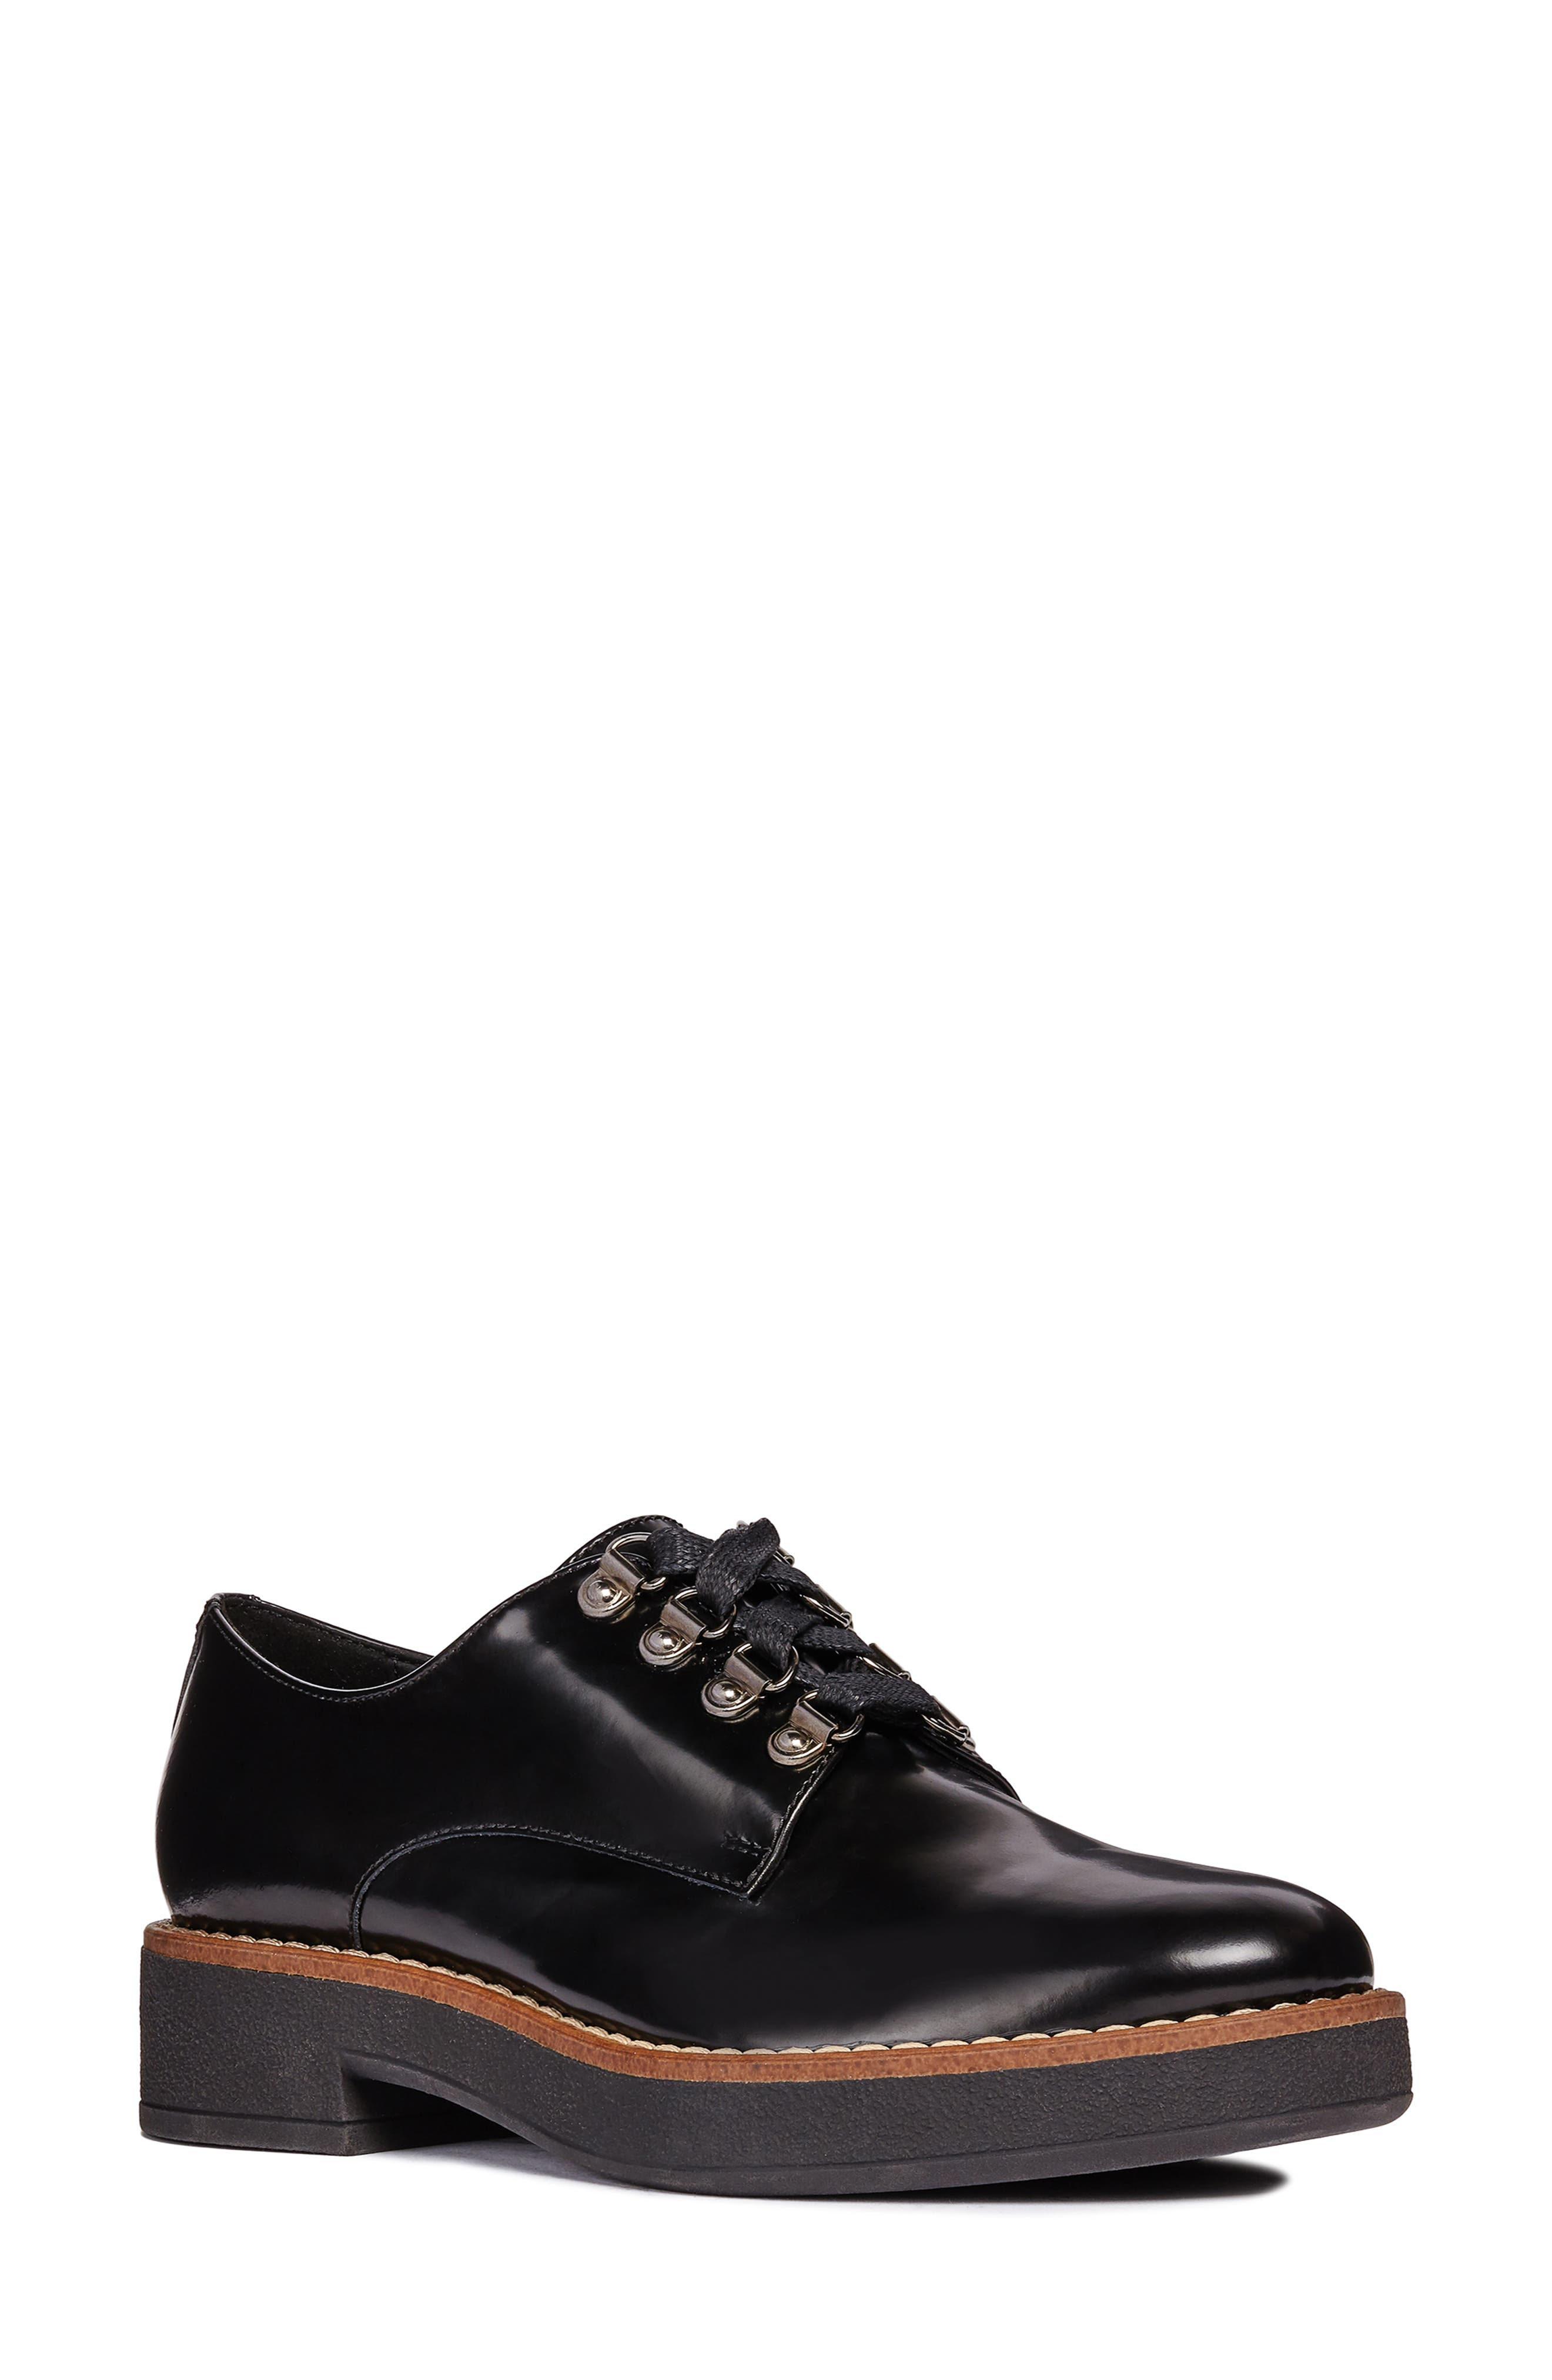 Adrya Oxford,                             Main thumbnail 1, color,                             BLACK/ BEIGE LEATHER